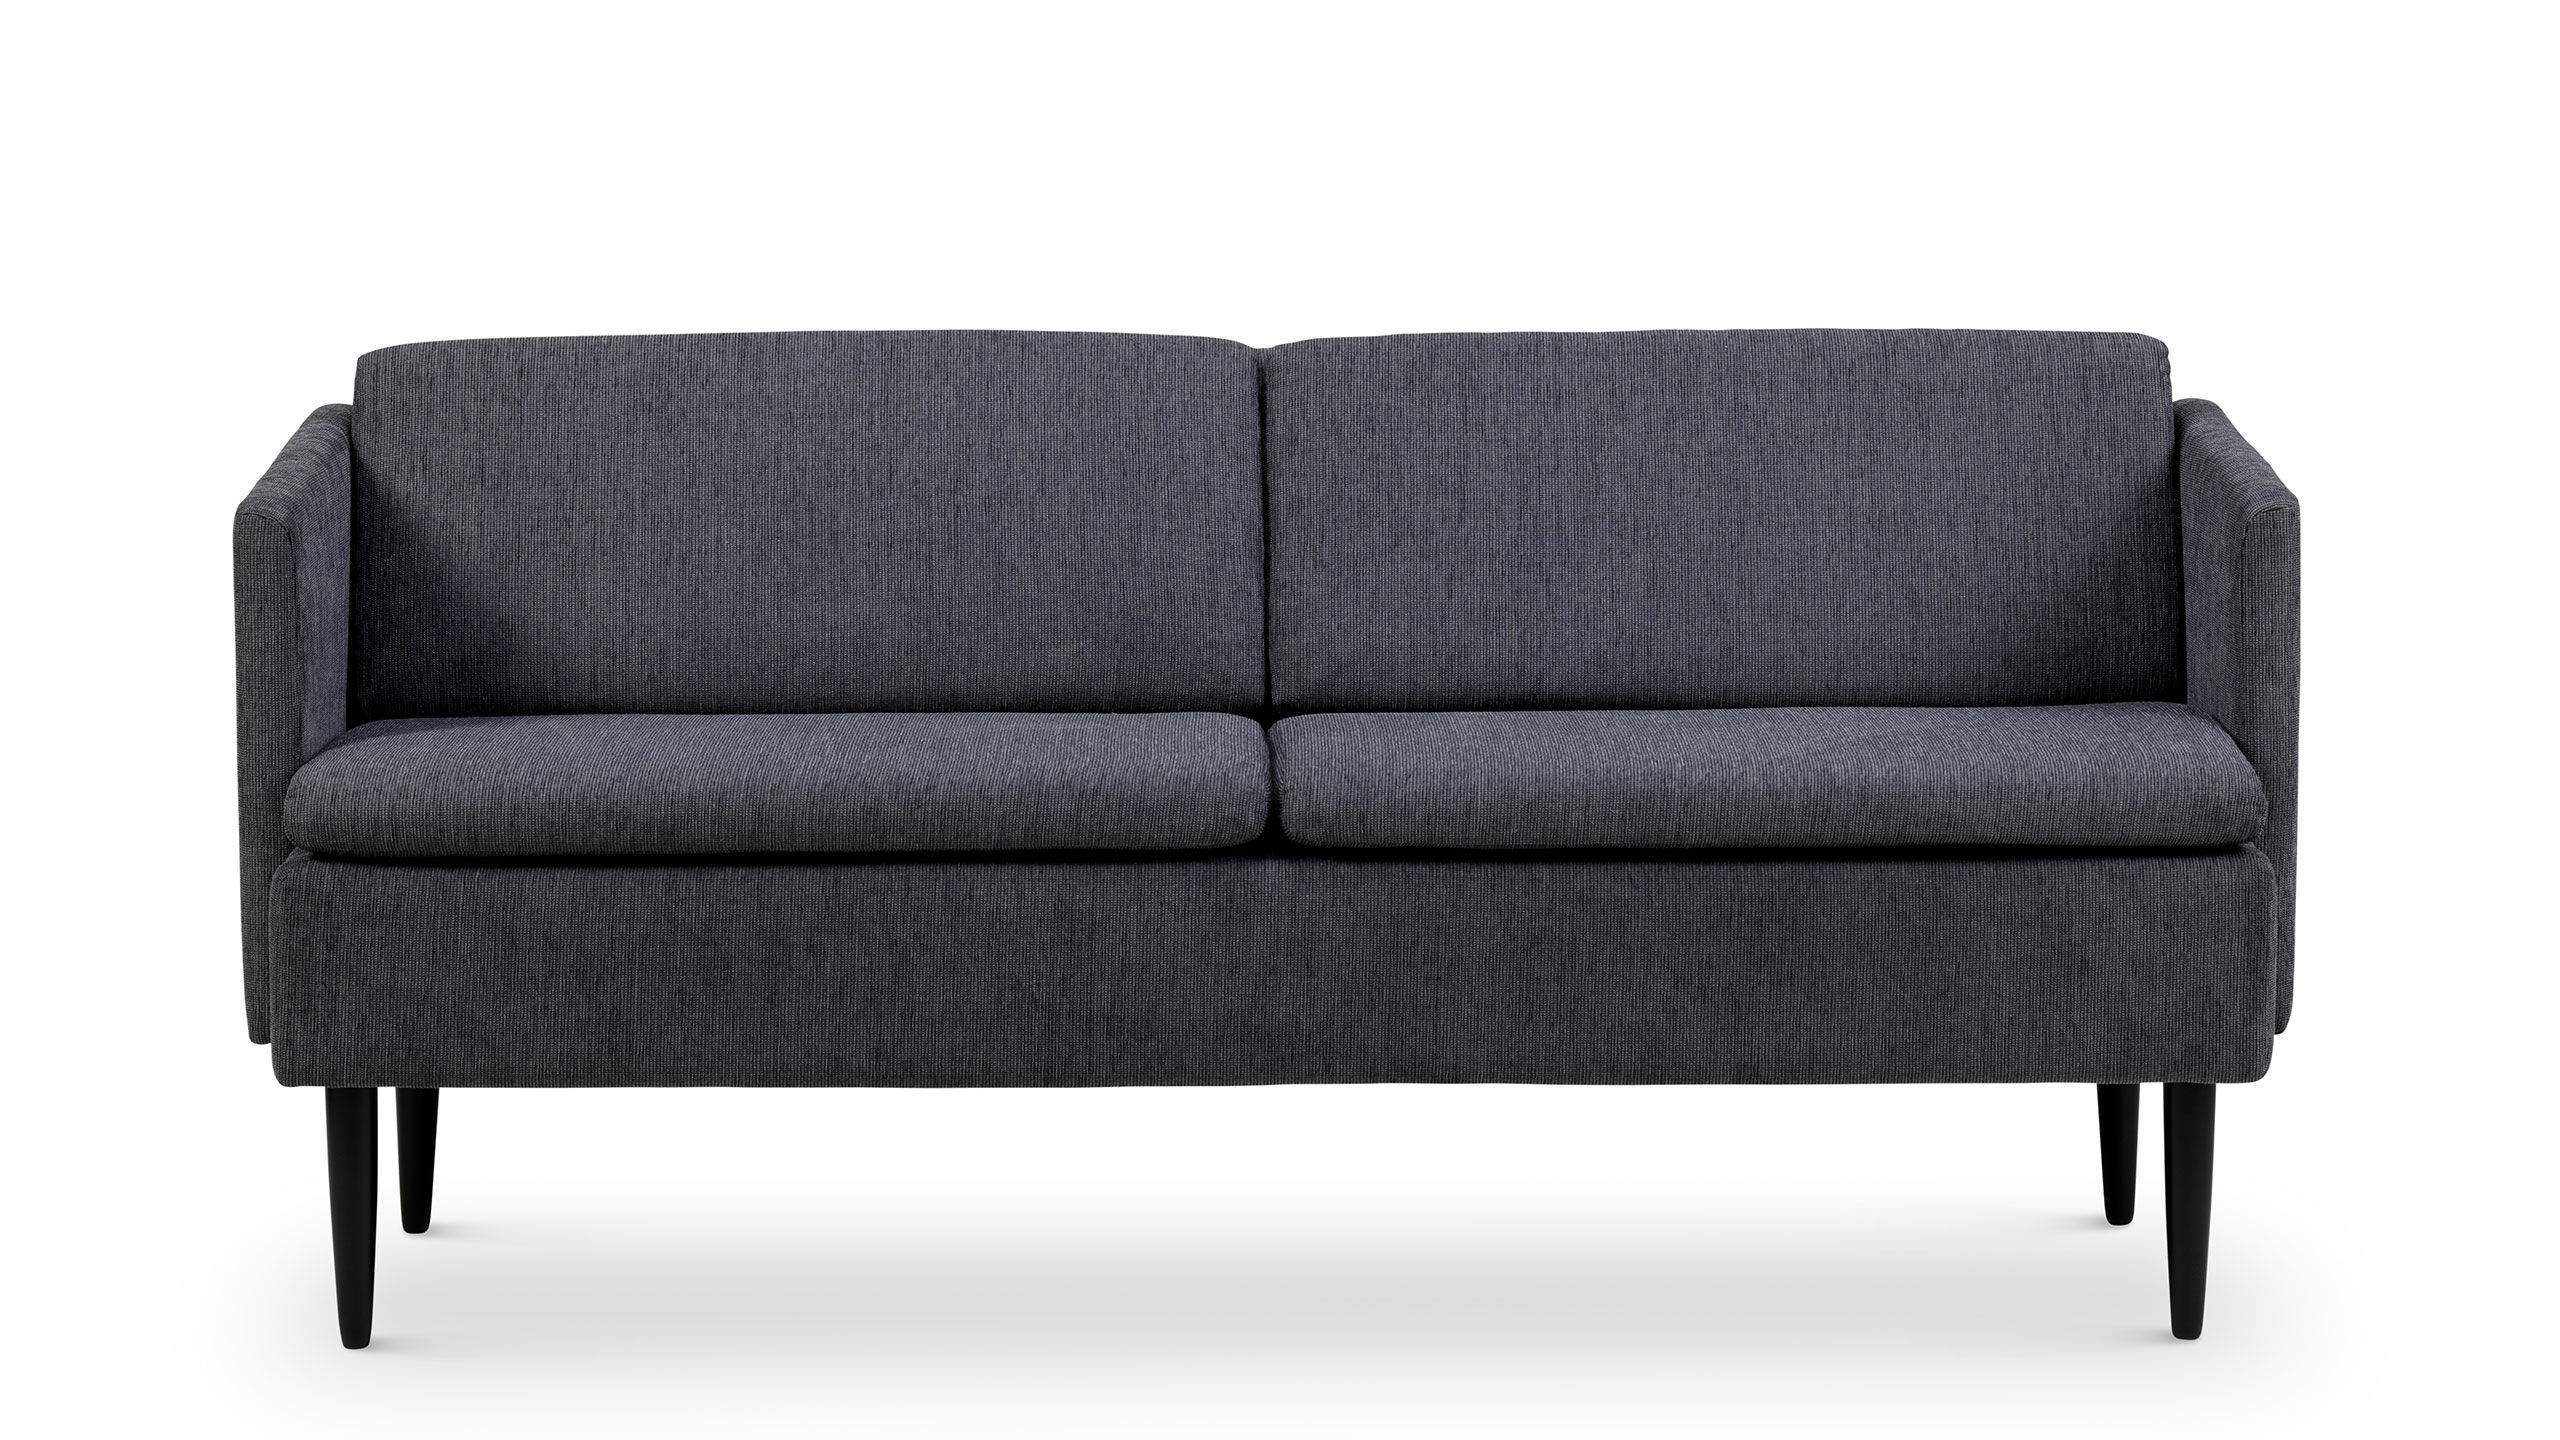 Full Size of Stressless Sofa Used Ekornes Sale Manhattan Sofas And Chairs Stella Kombination Leather Furniture Couch Cost Uk Bank Spice Blau Muuto Rattan Reiniger Stoff Sofa Stressless Sofa